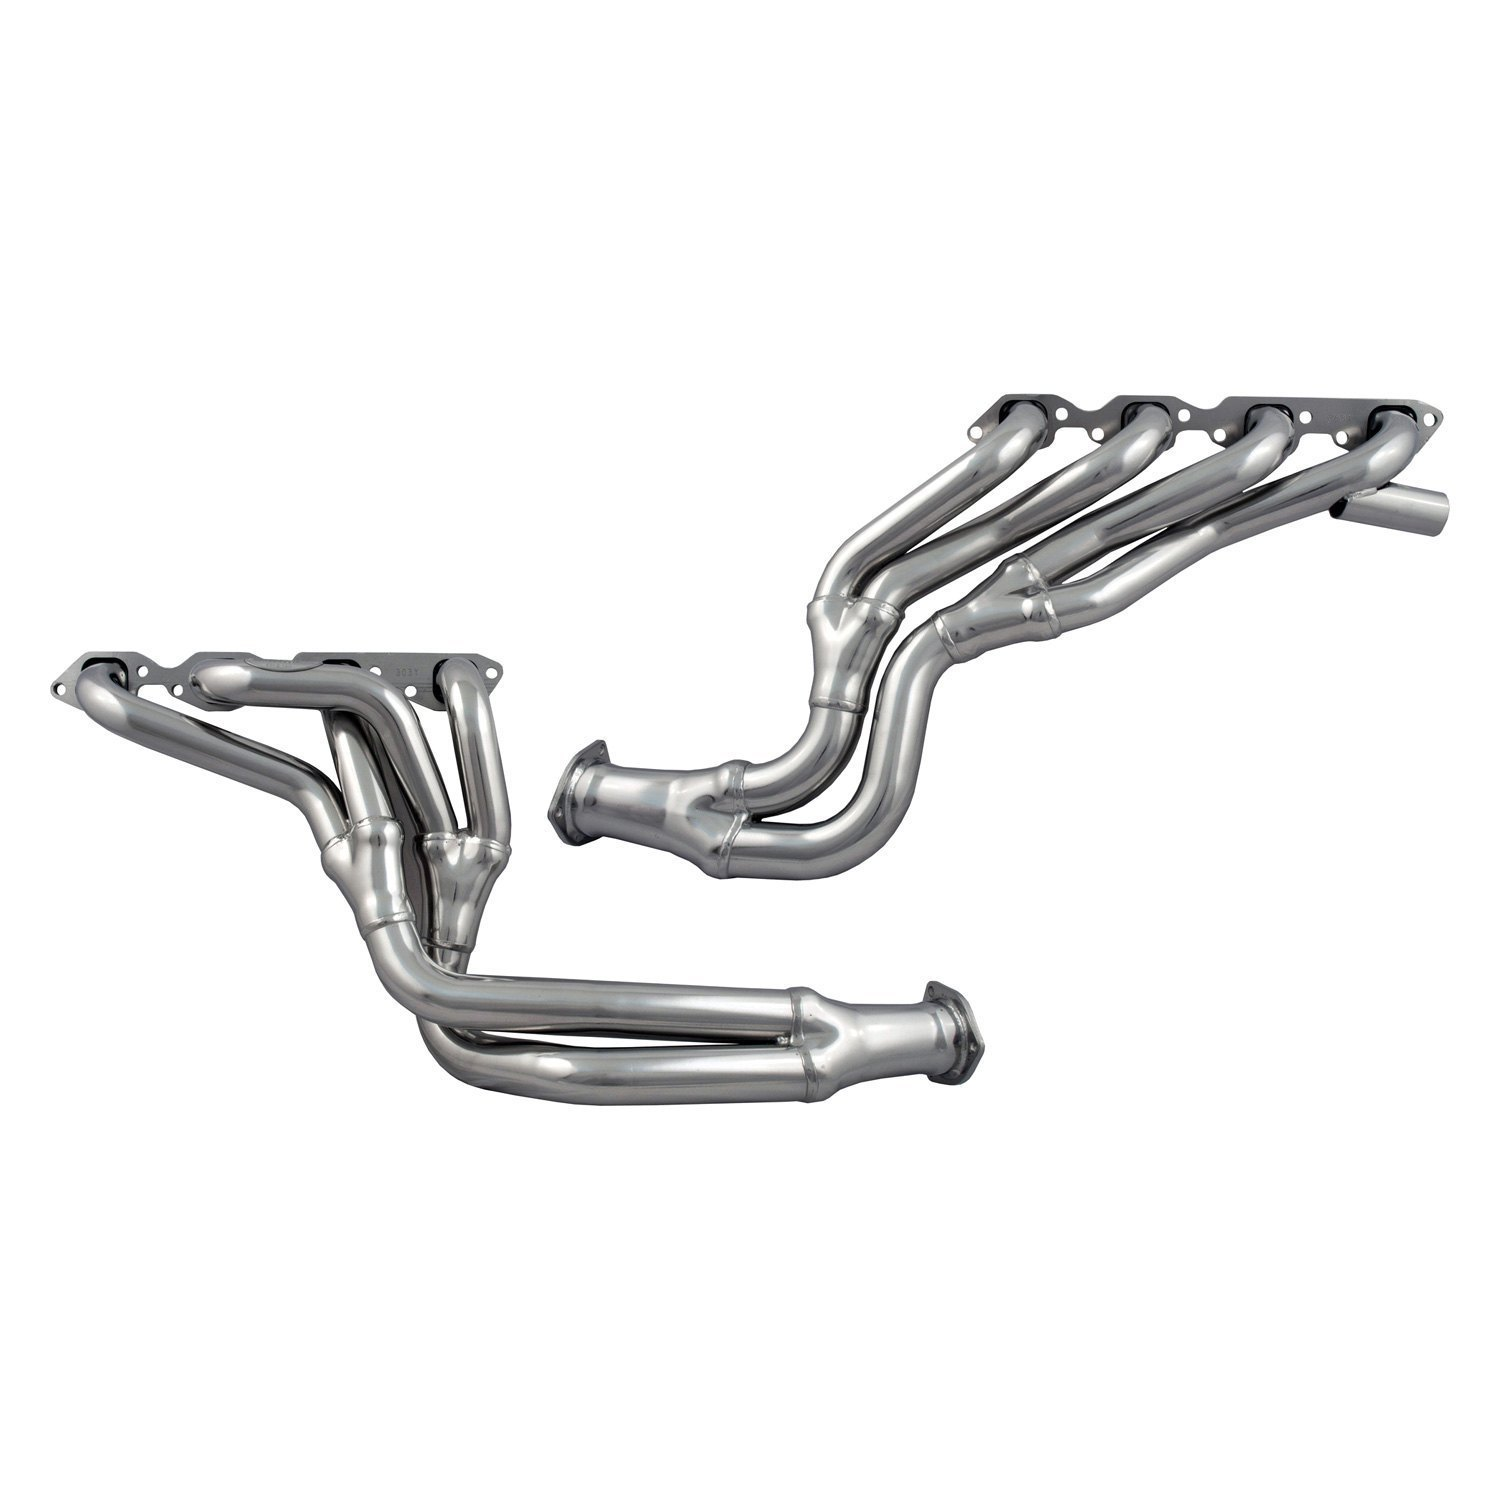 Doug Thorley Headers Thy 306y1 S C